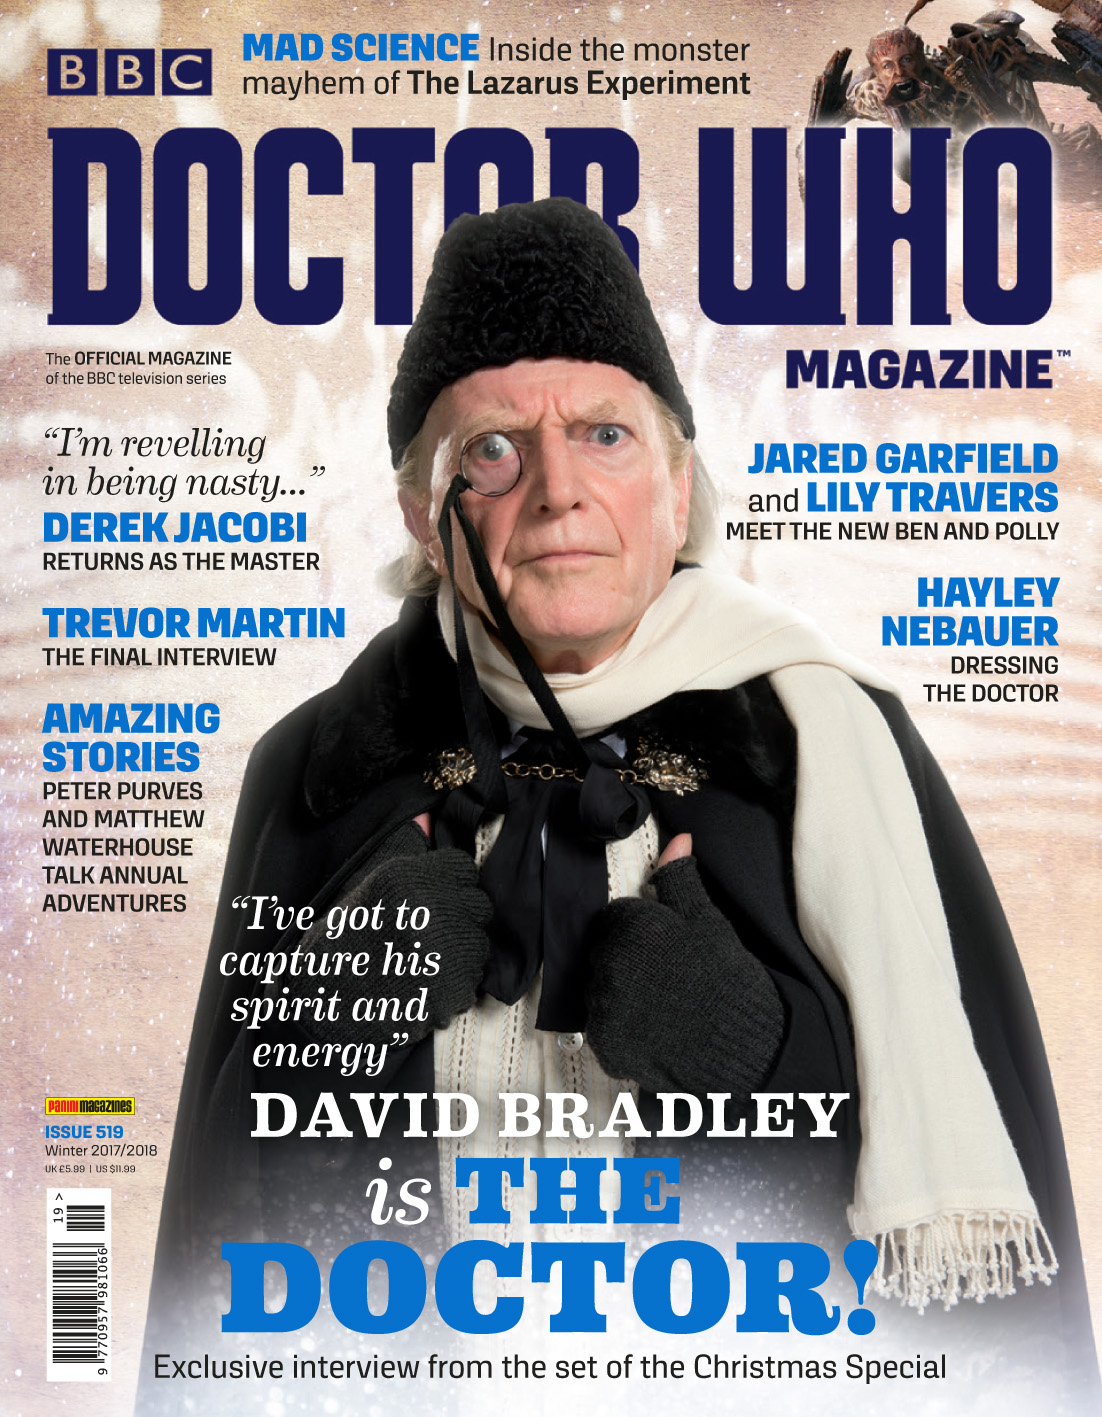 Doctor Who Magazine - 519 (Credit: Panini)